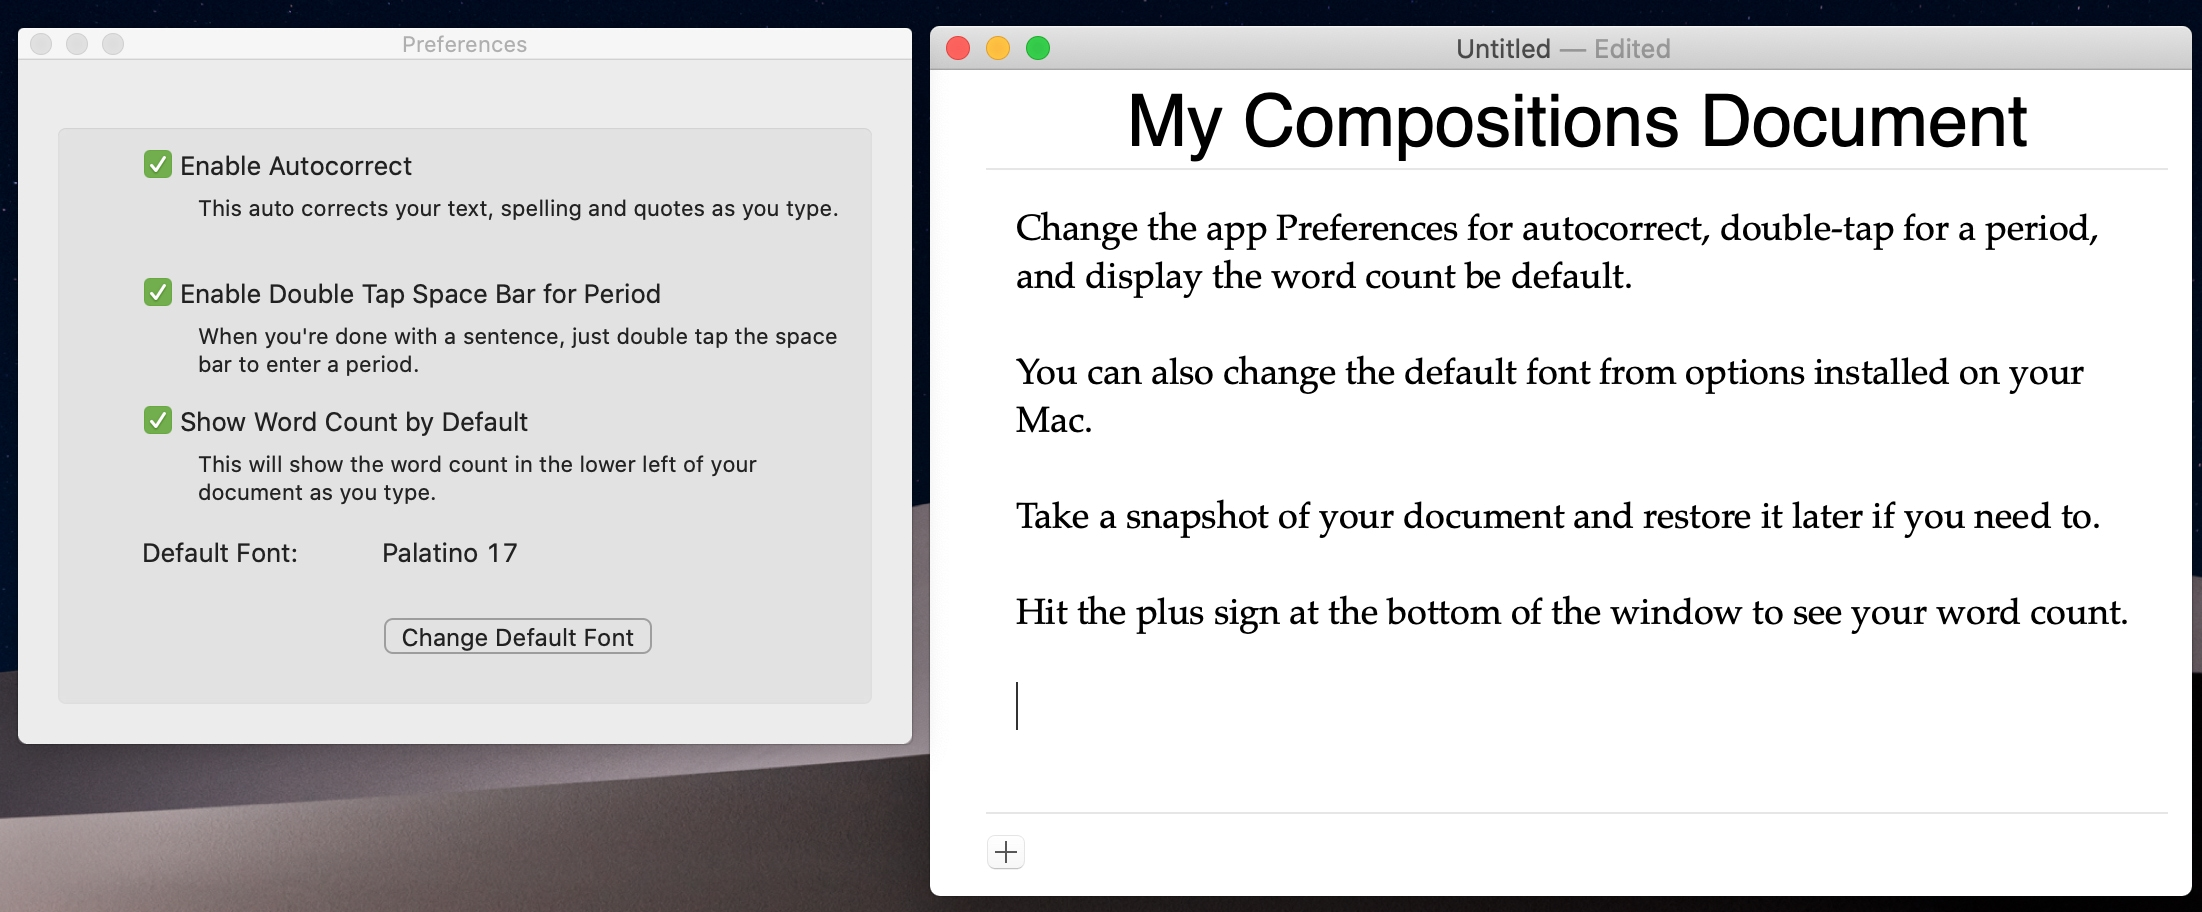 Compositions app on Mac for focused writing